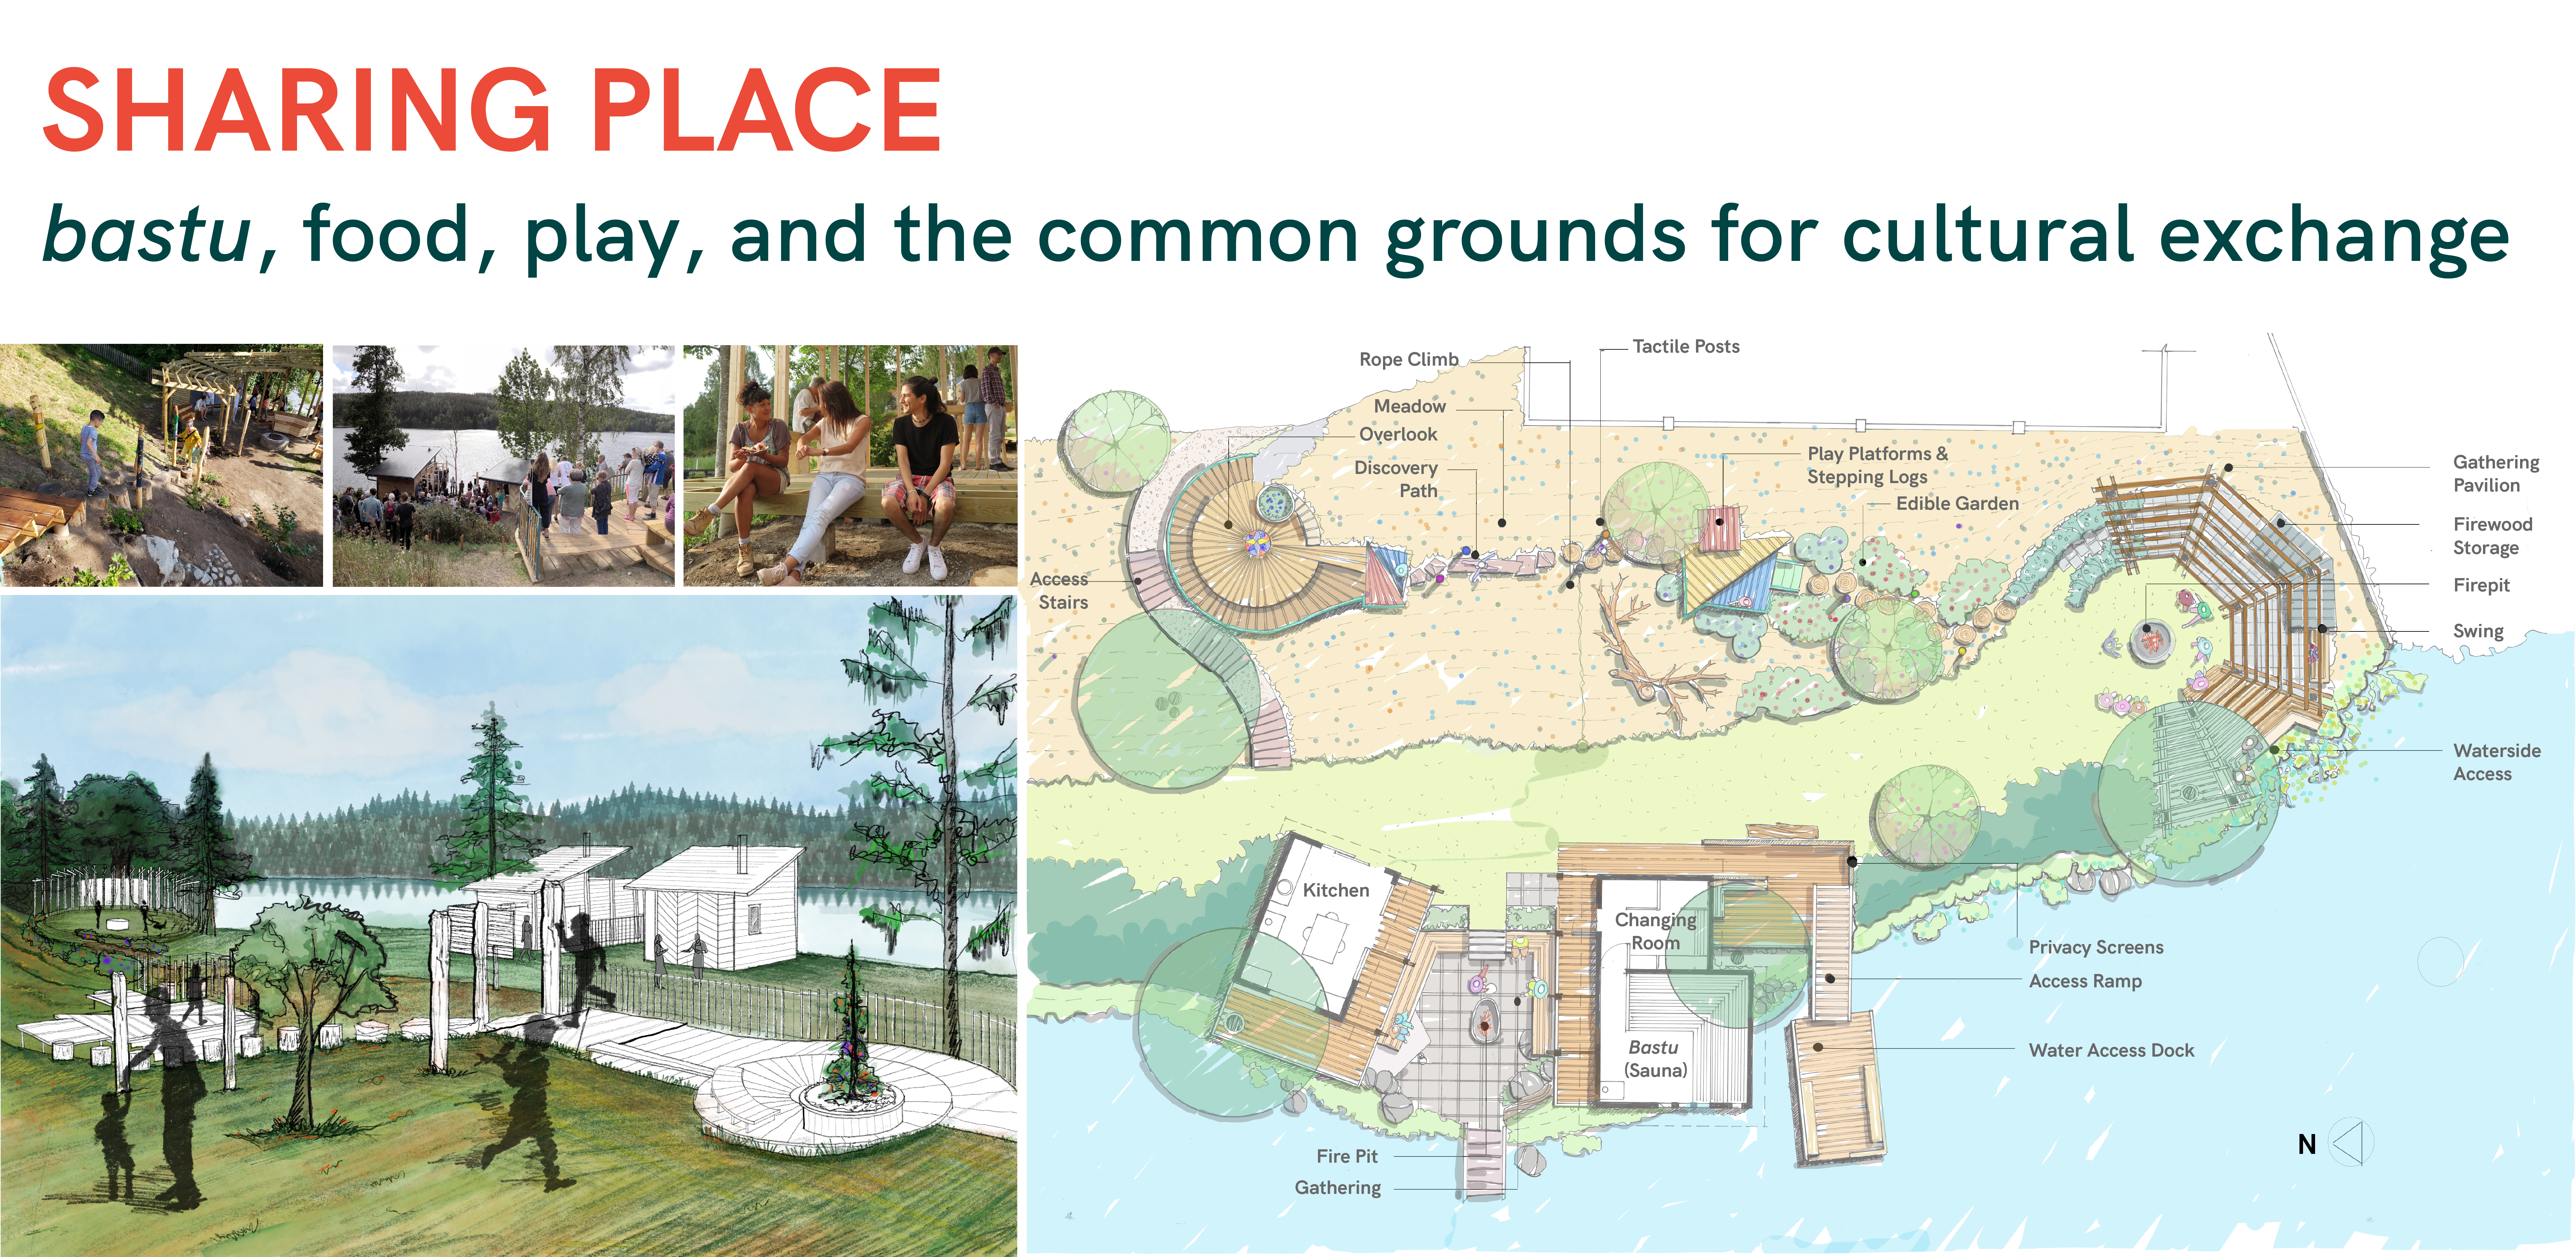 GROUNDS FOR CULTURAL EXCHANGE